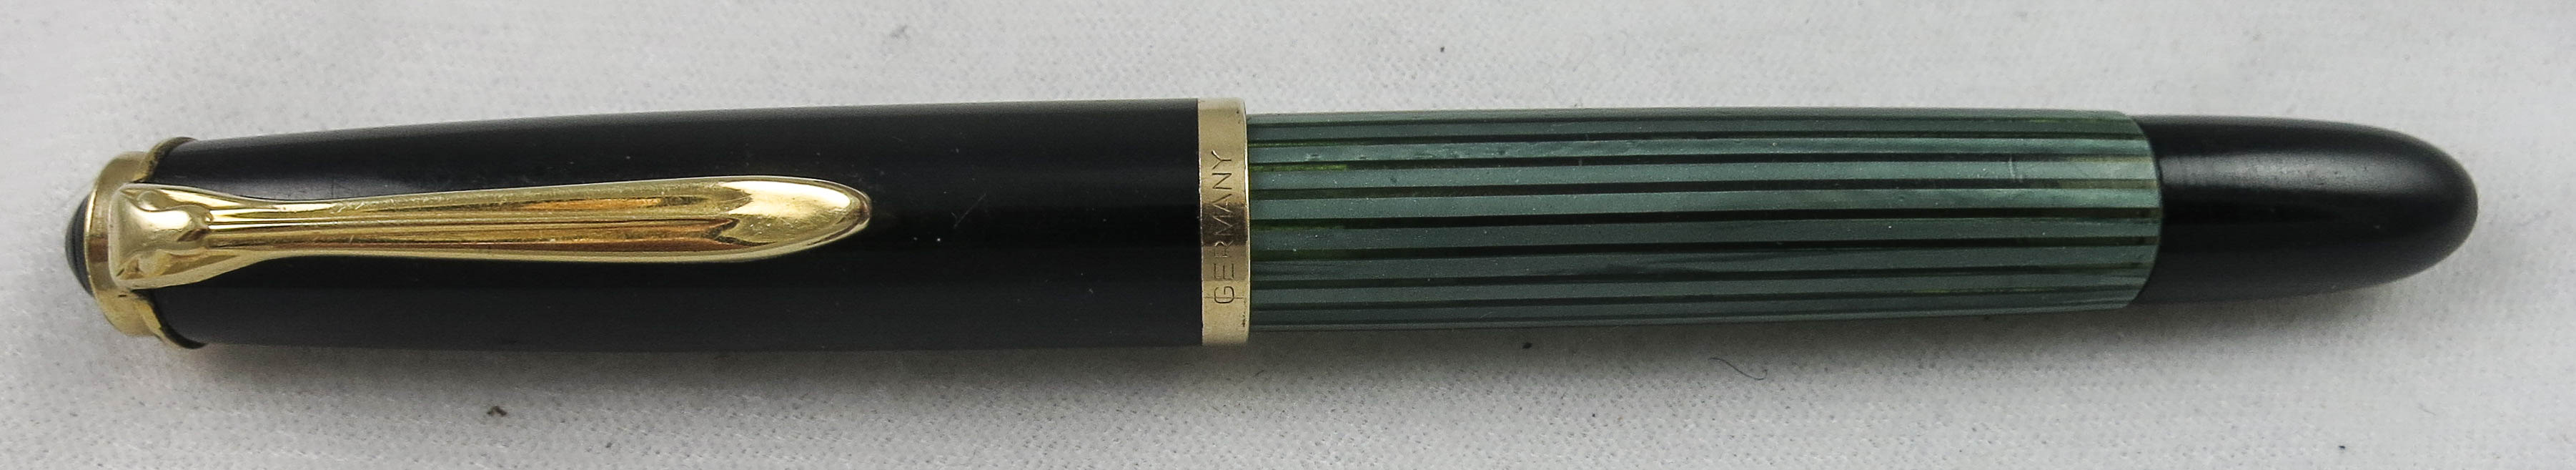 Pelikan 400 Green Striped - Flex Nib (SB524)